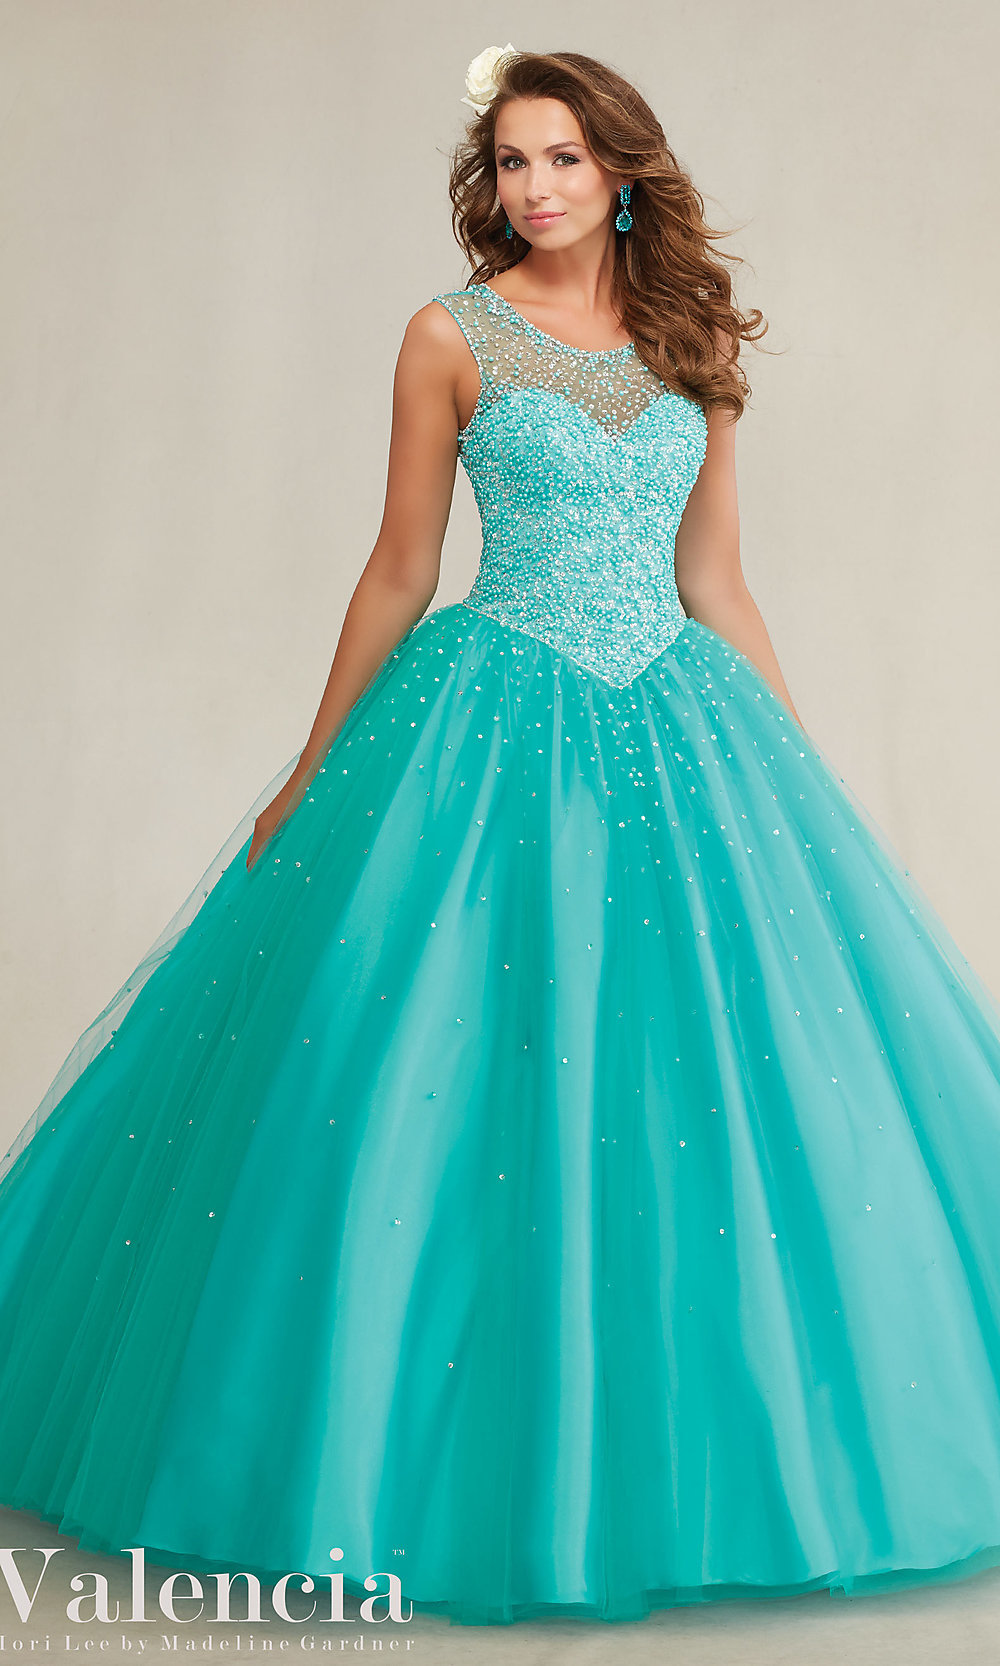 cf18f7ef60a Valencia Quinceanera Dresses Red - Gomes Weine AG